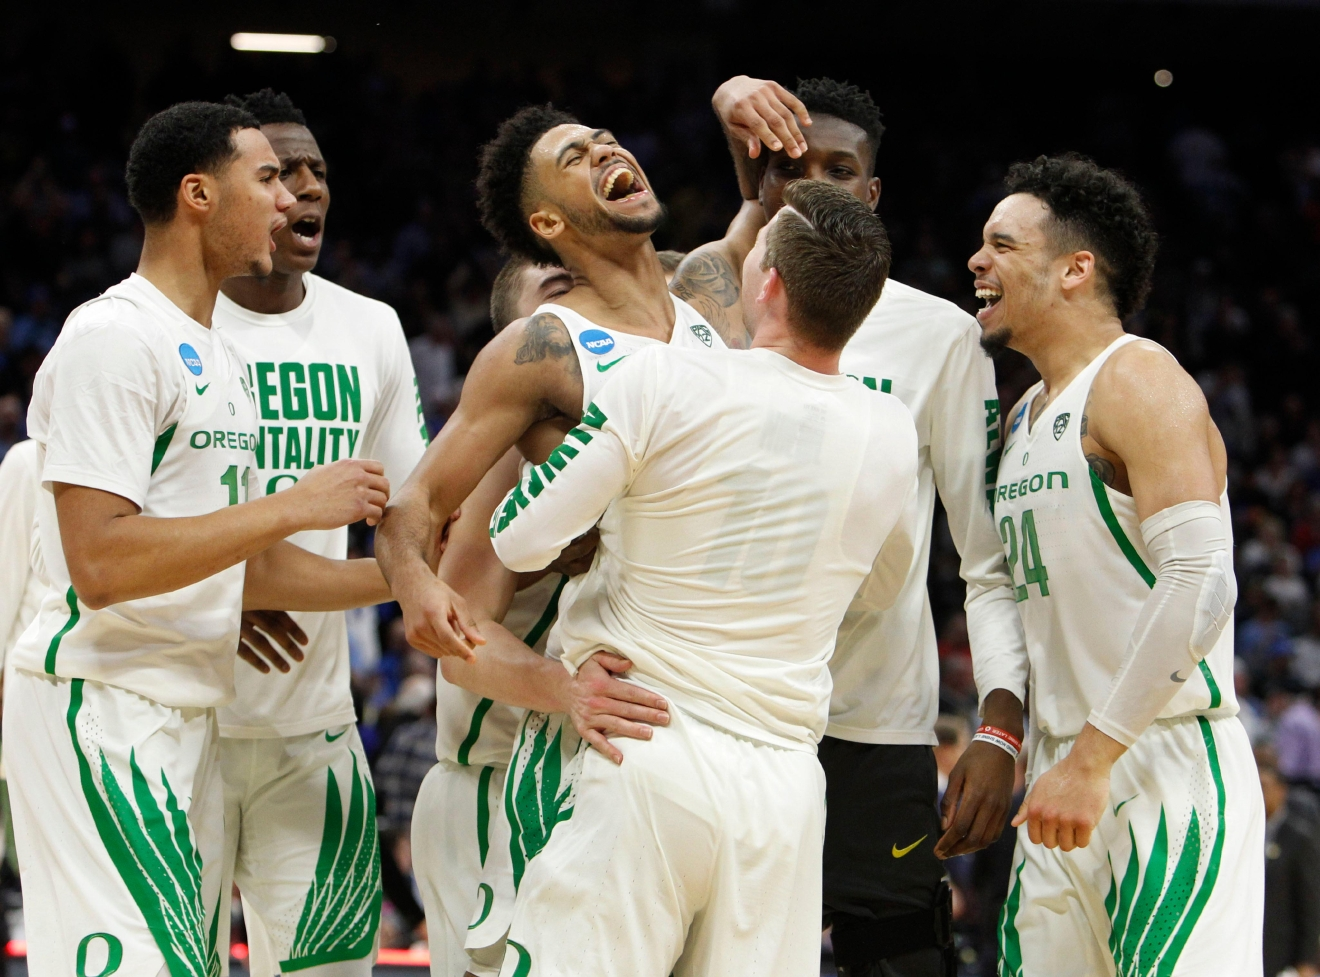 Oregon guard Tyler Dorsey, center, celebrates with teammates after their win over Rhode Island during a second-round game in the NCAA college basketball tournament in Sacramento, Calif., Sunday, March 19, 2017. Oregon won 75-72. (AP Photo/Steve Yeater)